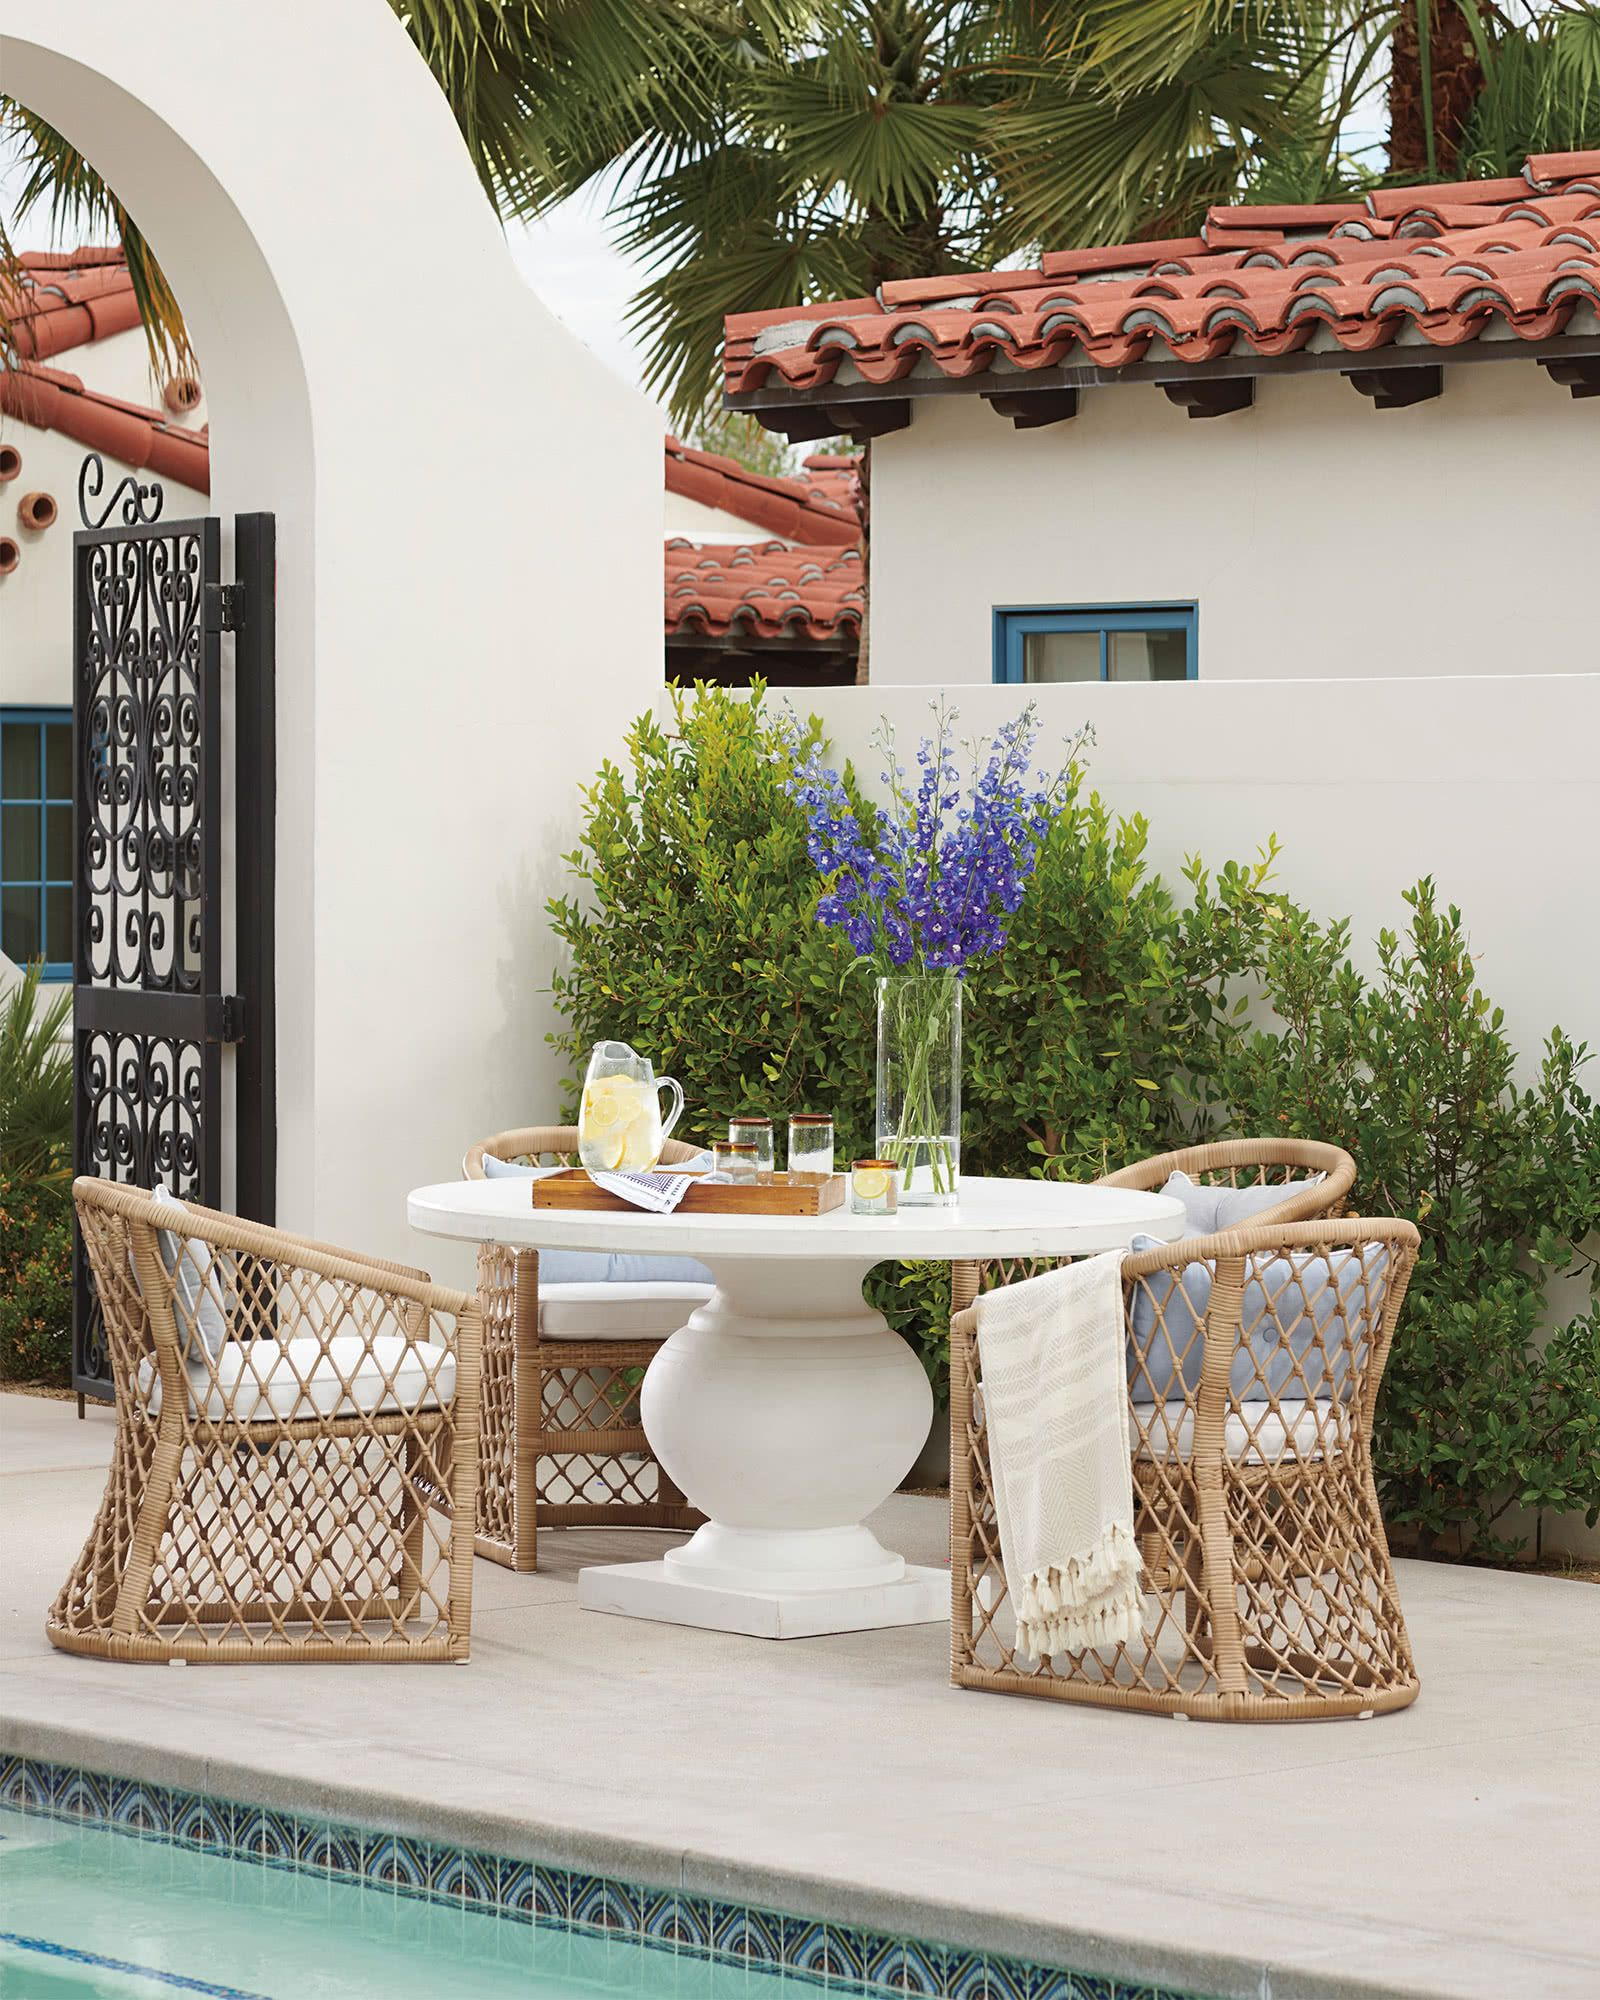 outdoor dining, white floor, white round table, rattan chairs with white cushion